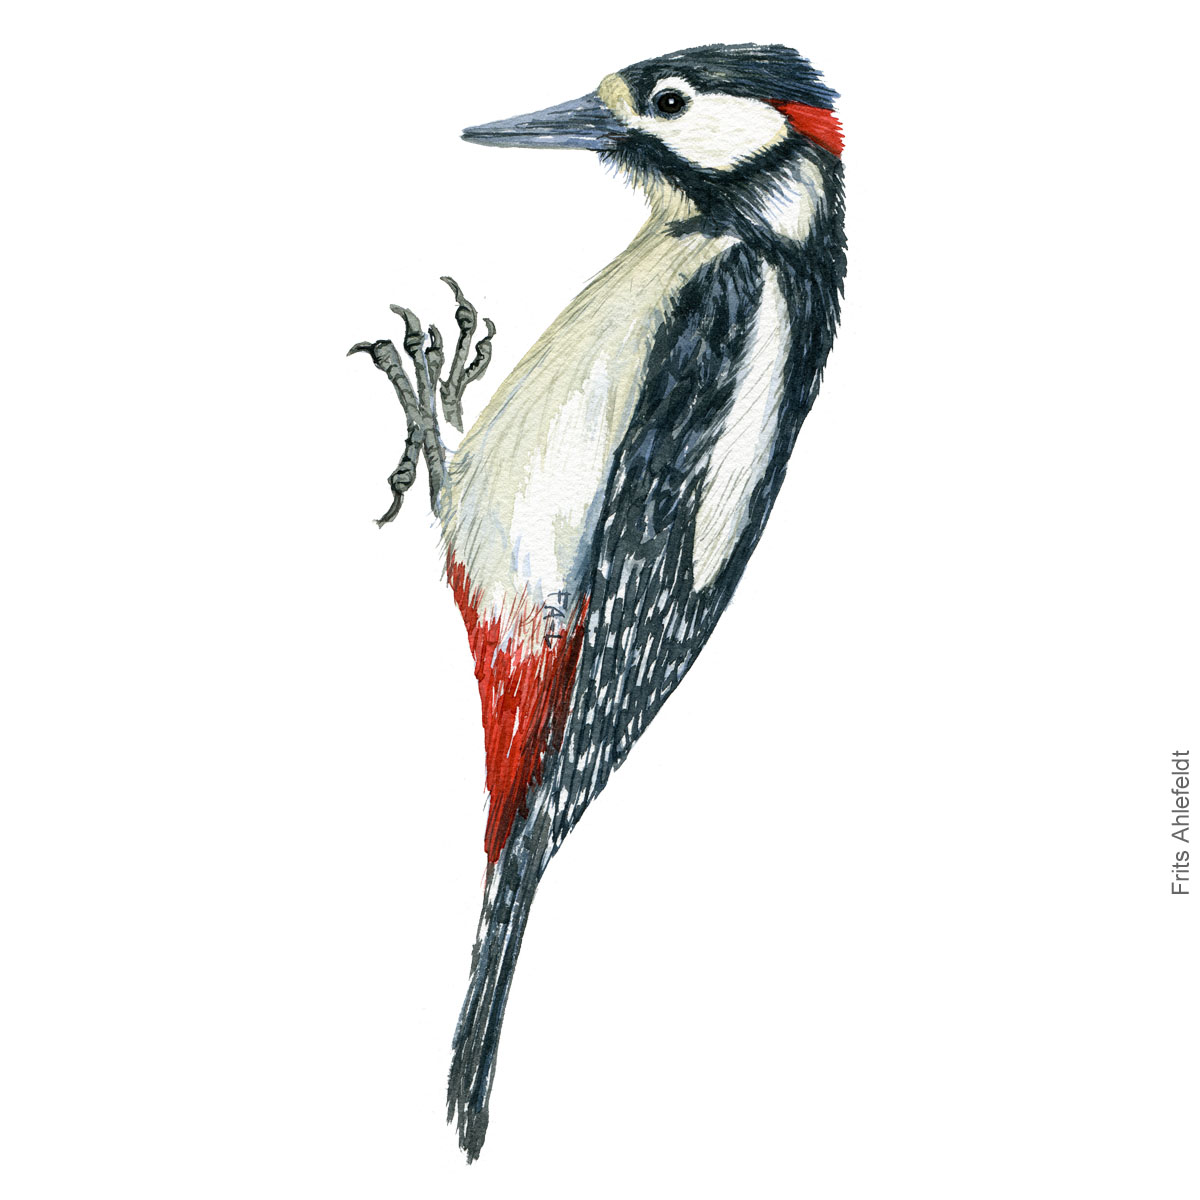 Stor flagspaette - Great spottet woodpecker - Bird painting in watercolor by Frits Ahlefeldt - Fugle akvarel